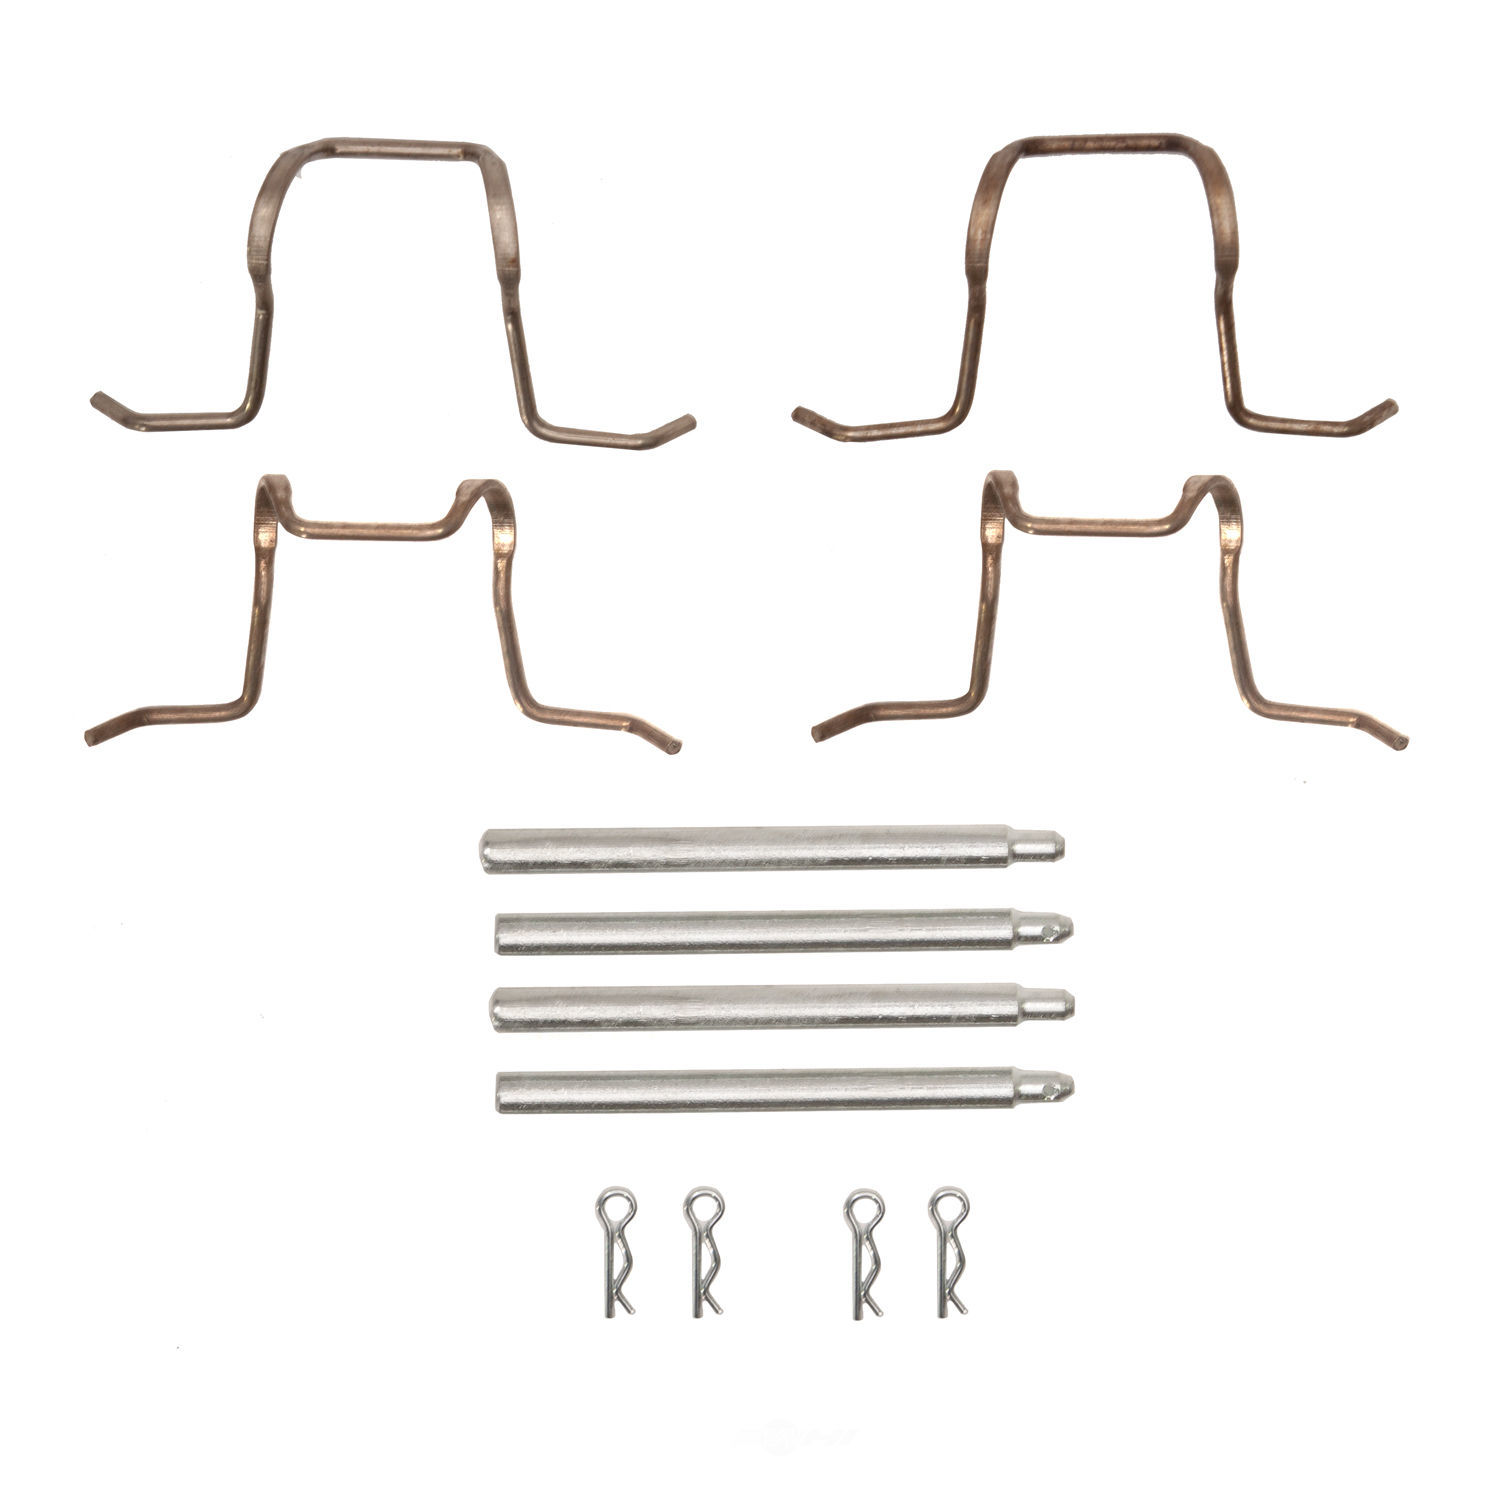 DFC - DFC Disc Brake Hardware Kit - DF1 340-63008